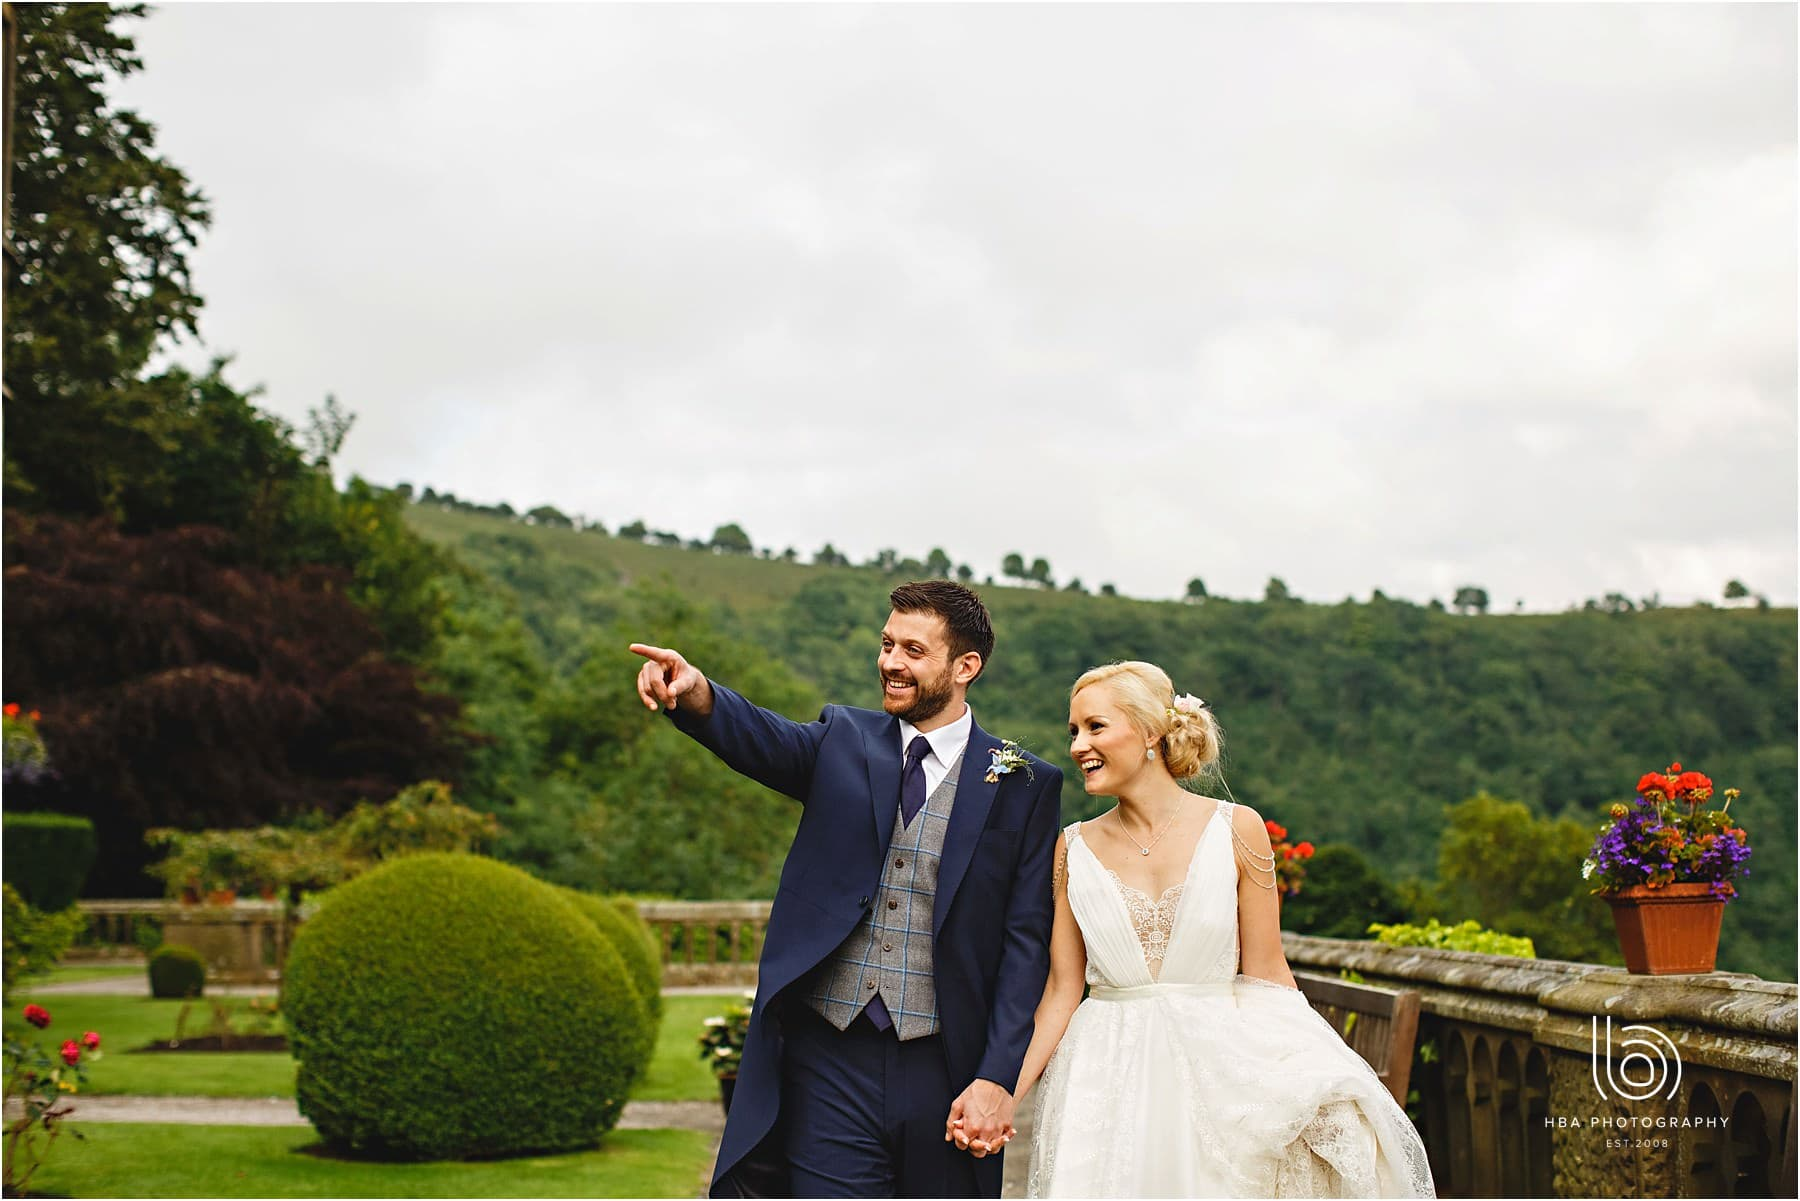 the bride & groom in the grounds of cressbrook hall